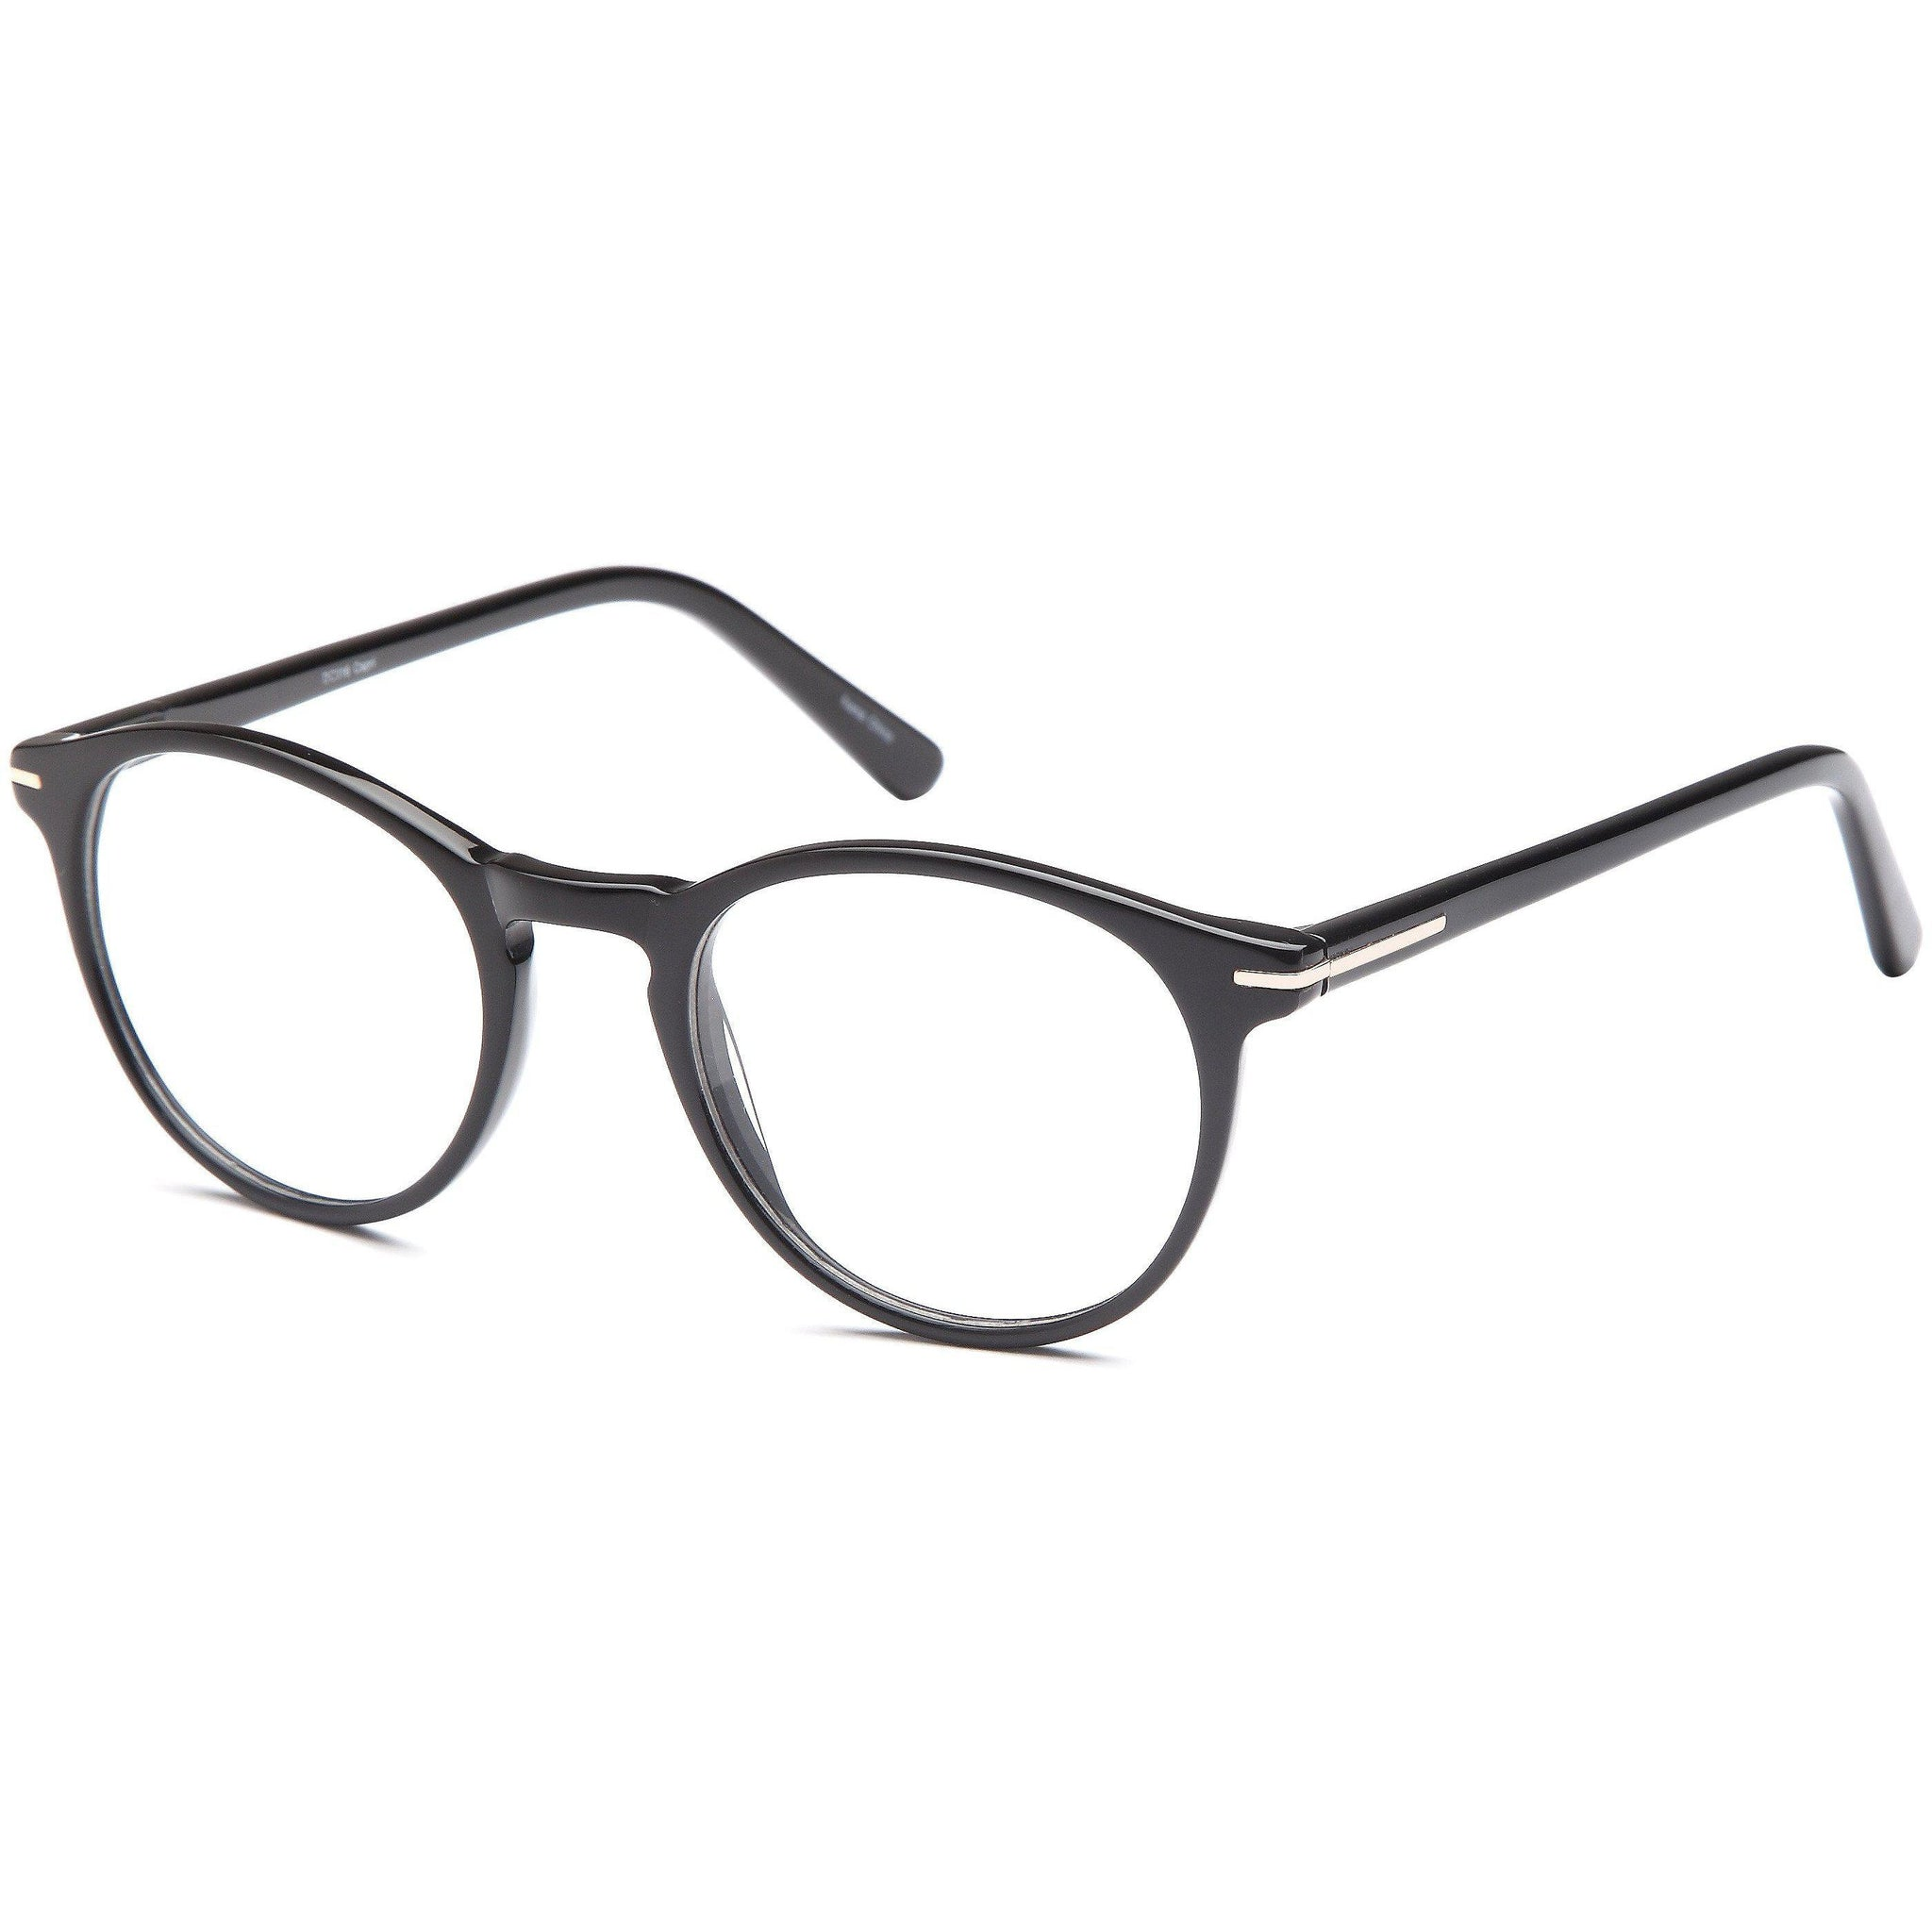 Di Caprio Prescription Glasses DC 316 Eyeglasses Frame - timetoshade